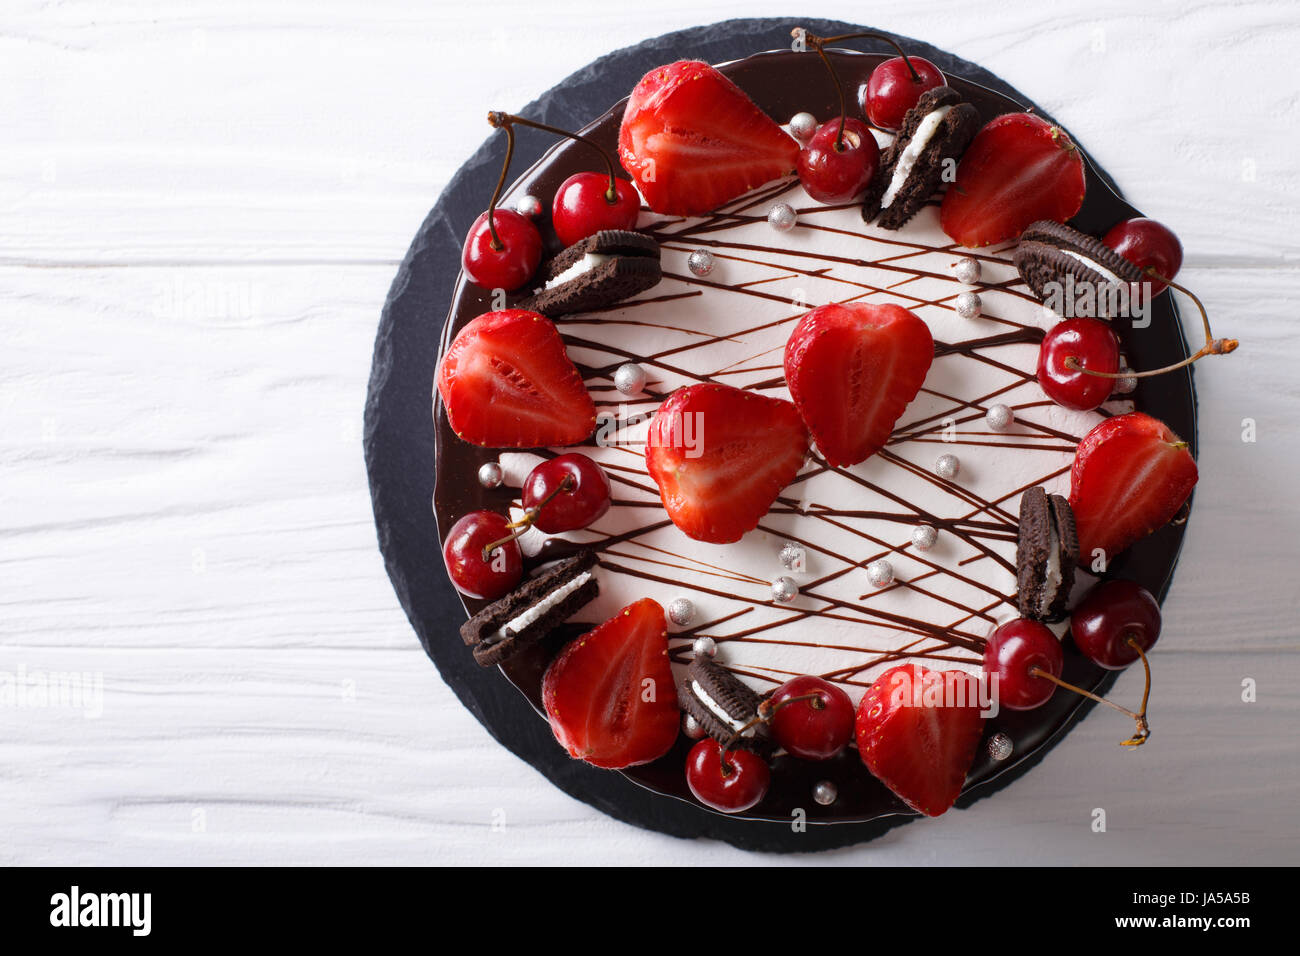 festive chocolate cake with strawberry and cherry close-up on the table. horizontal view from above - Stock Image